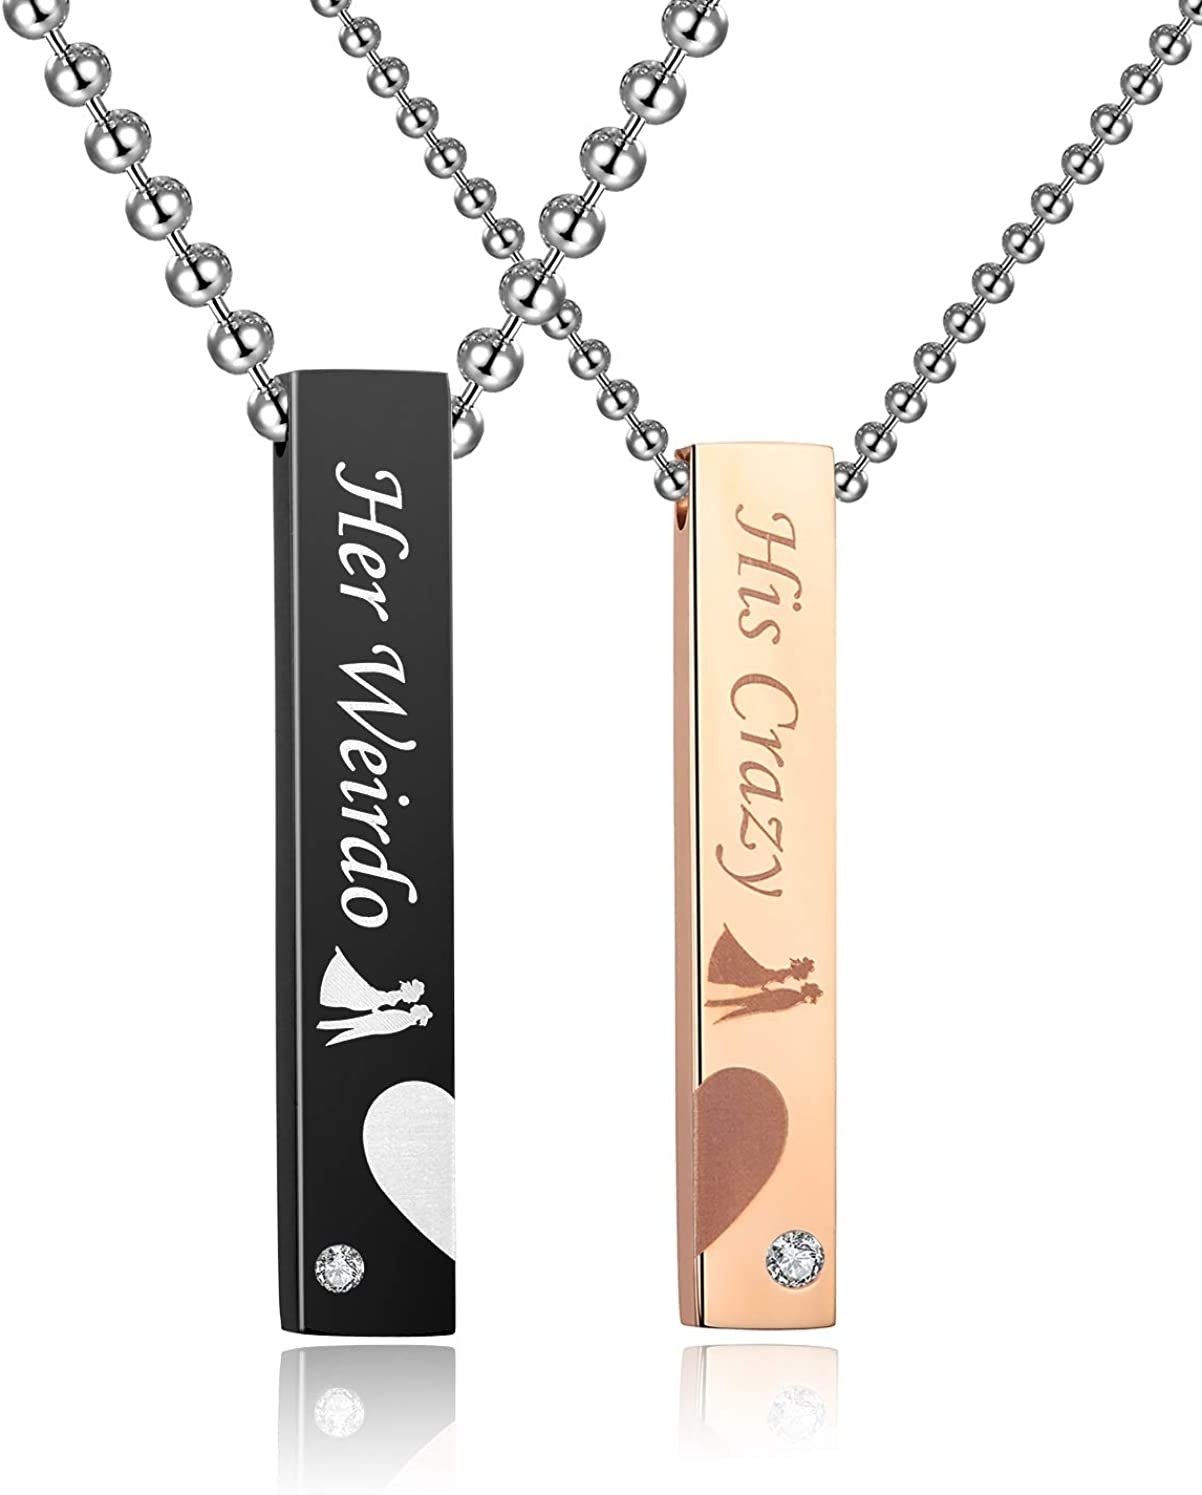 SunnyHouse Jewelry His & Hers Matching Set Stainless Steel His Crazy Her Weirdo Heart with Heart Couple Bar Pendant Necklace